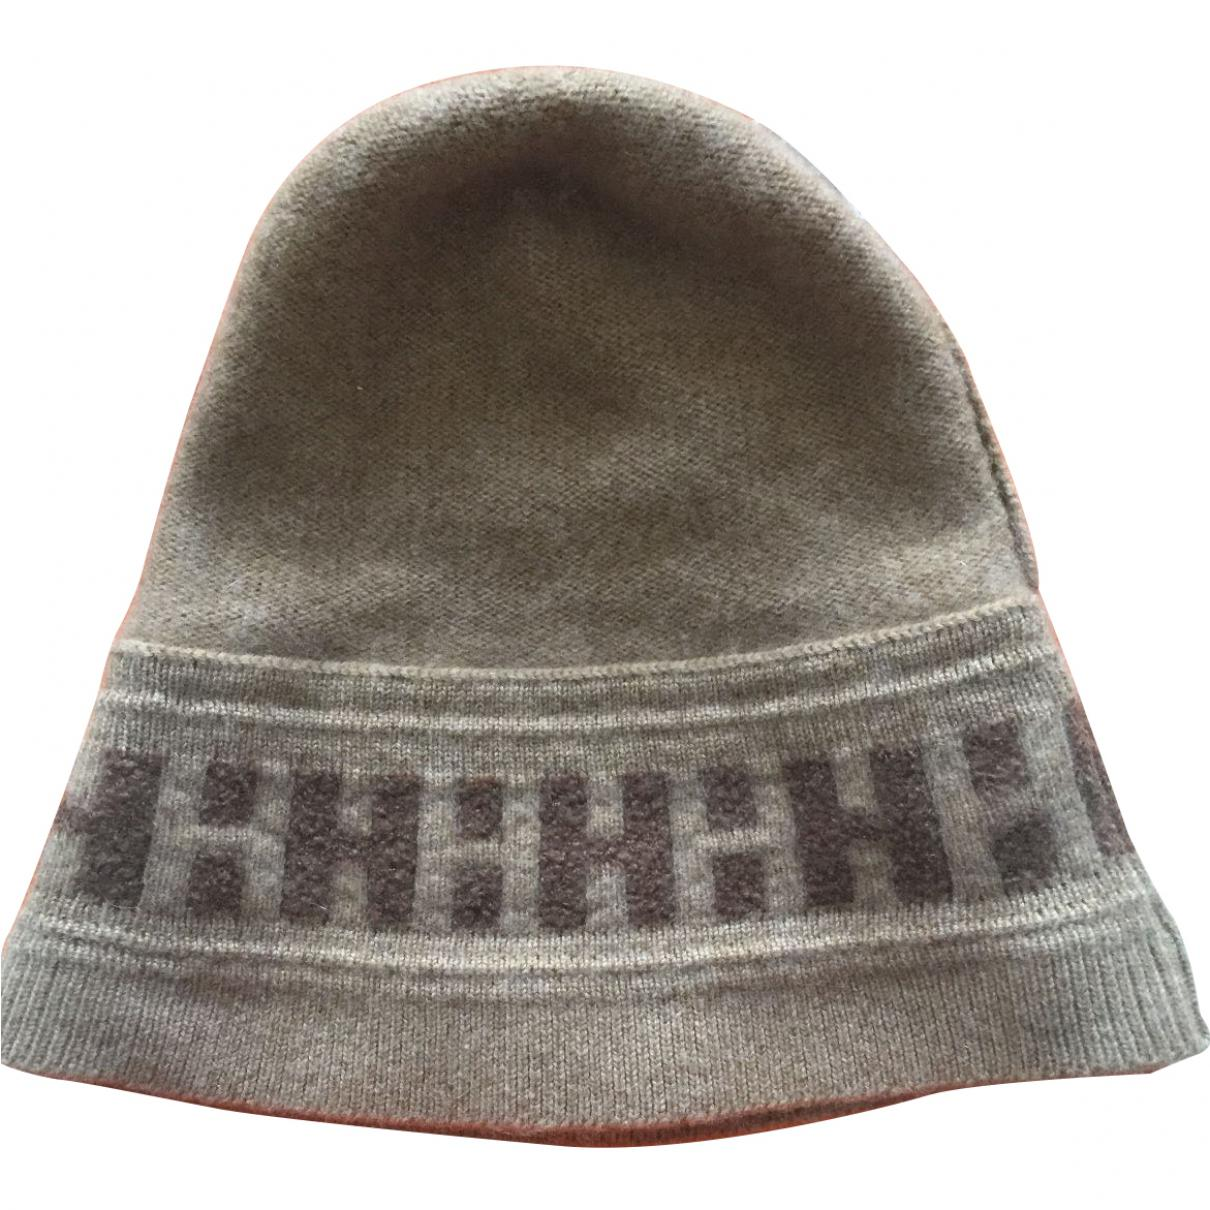 0f112f82 Hermès. Women's Other Cashmere Hats